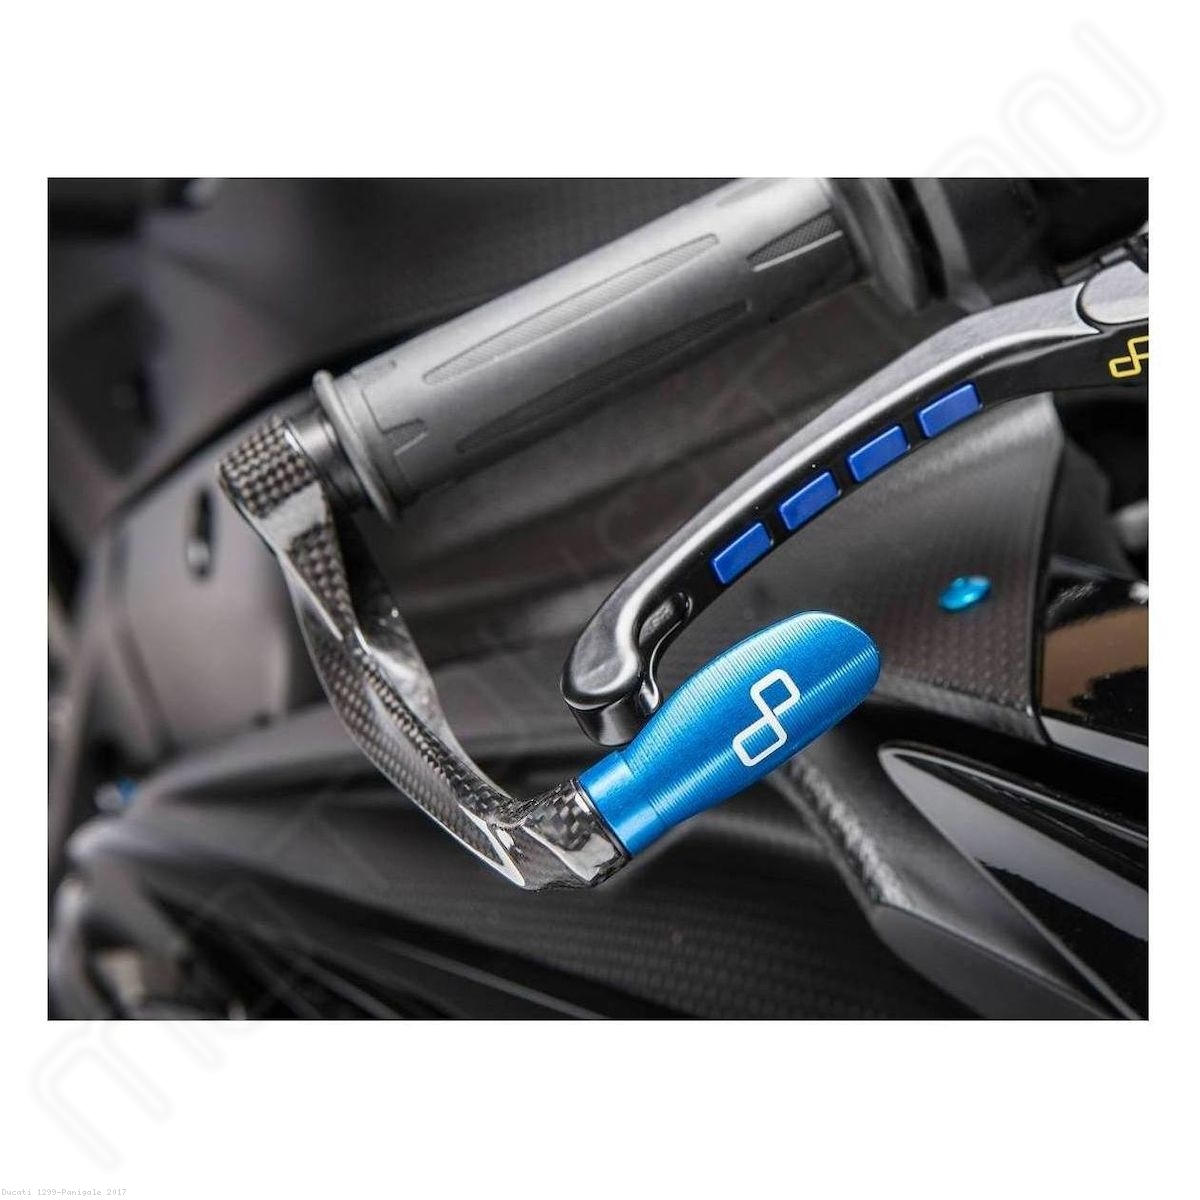 Carbon Fiber Brake Lever Guard With Adapter By Lightech Ducati